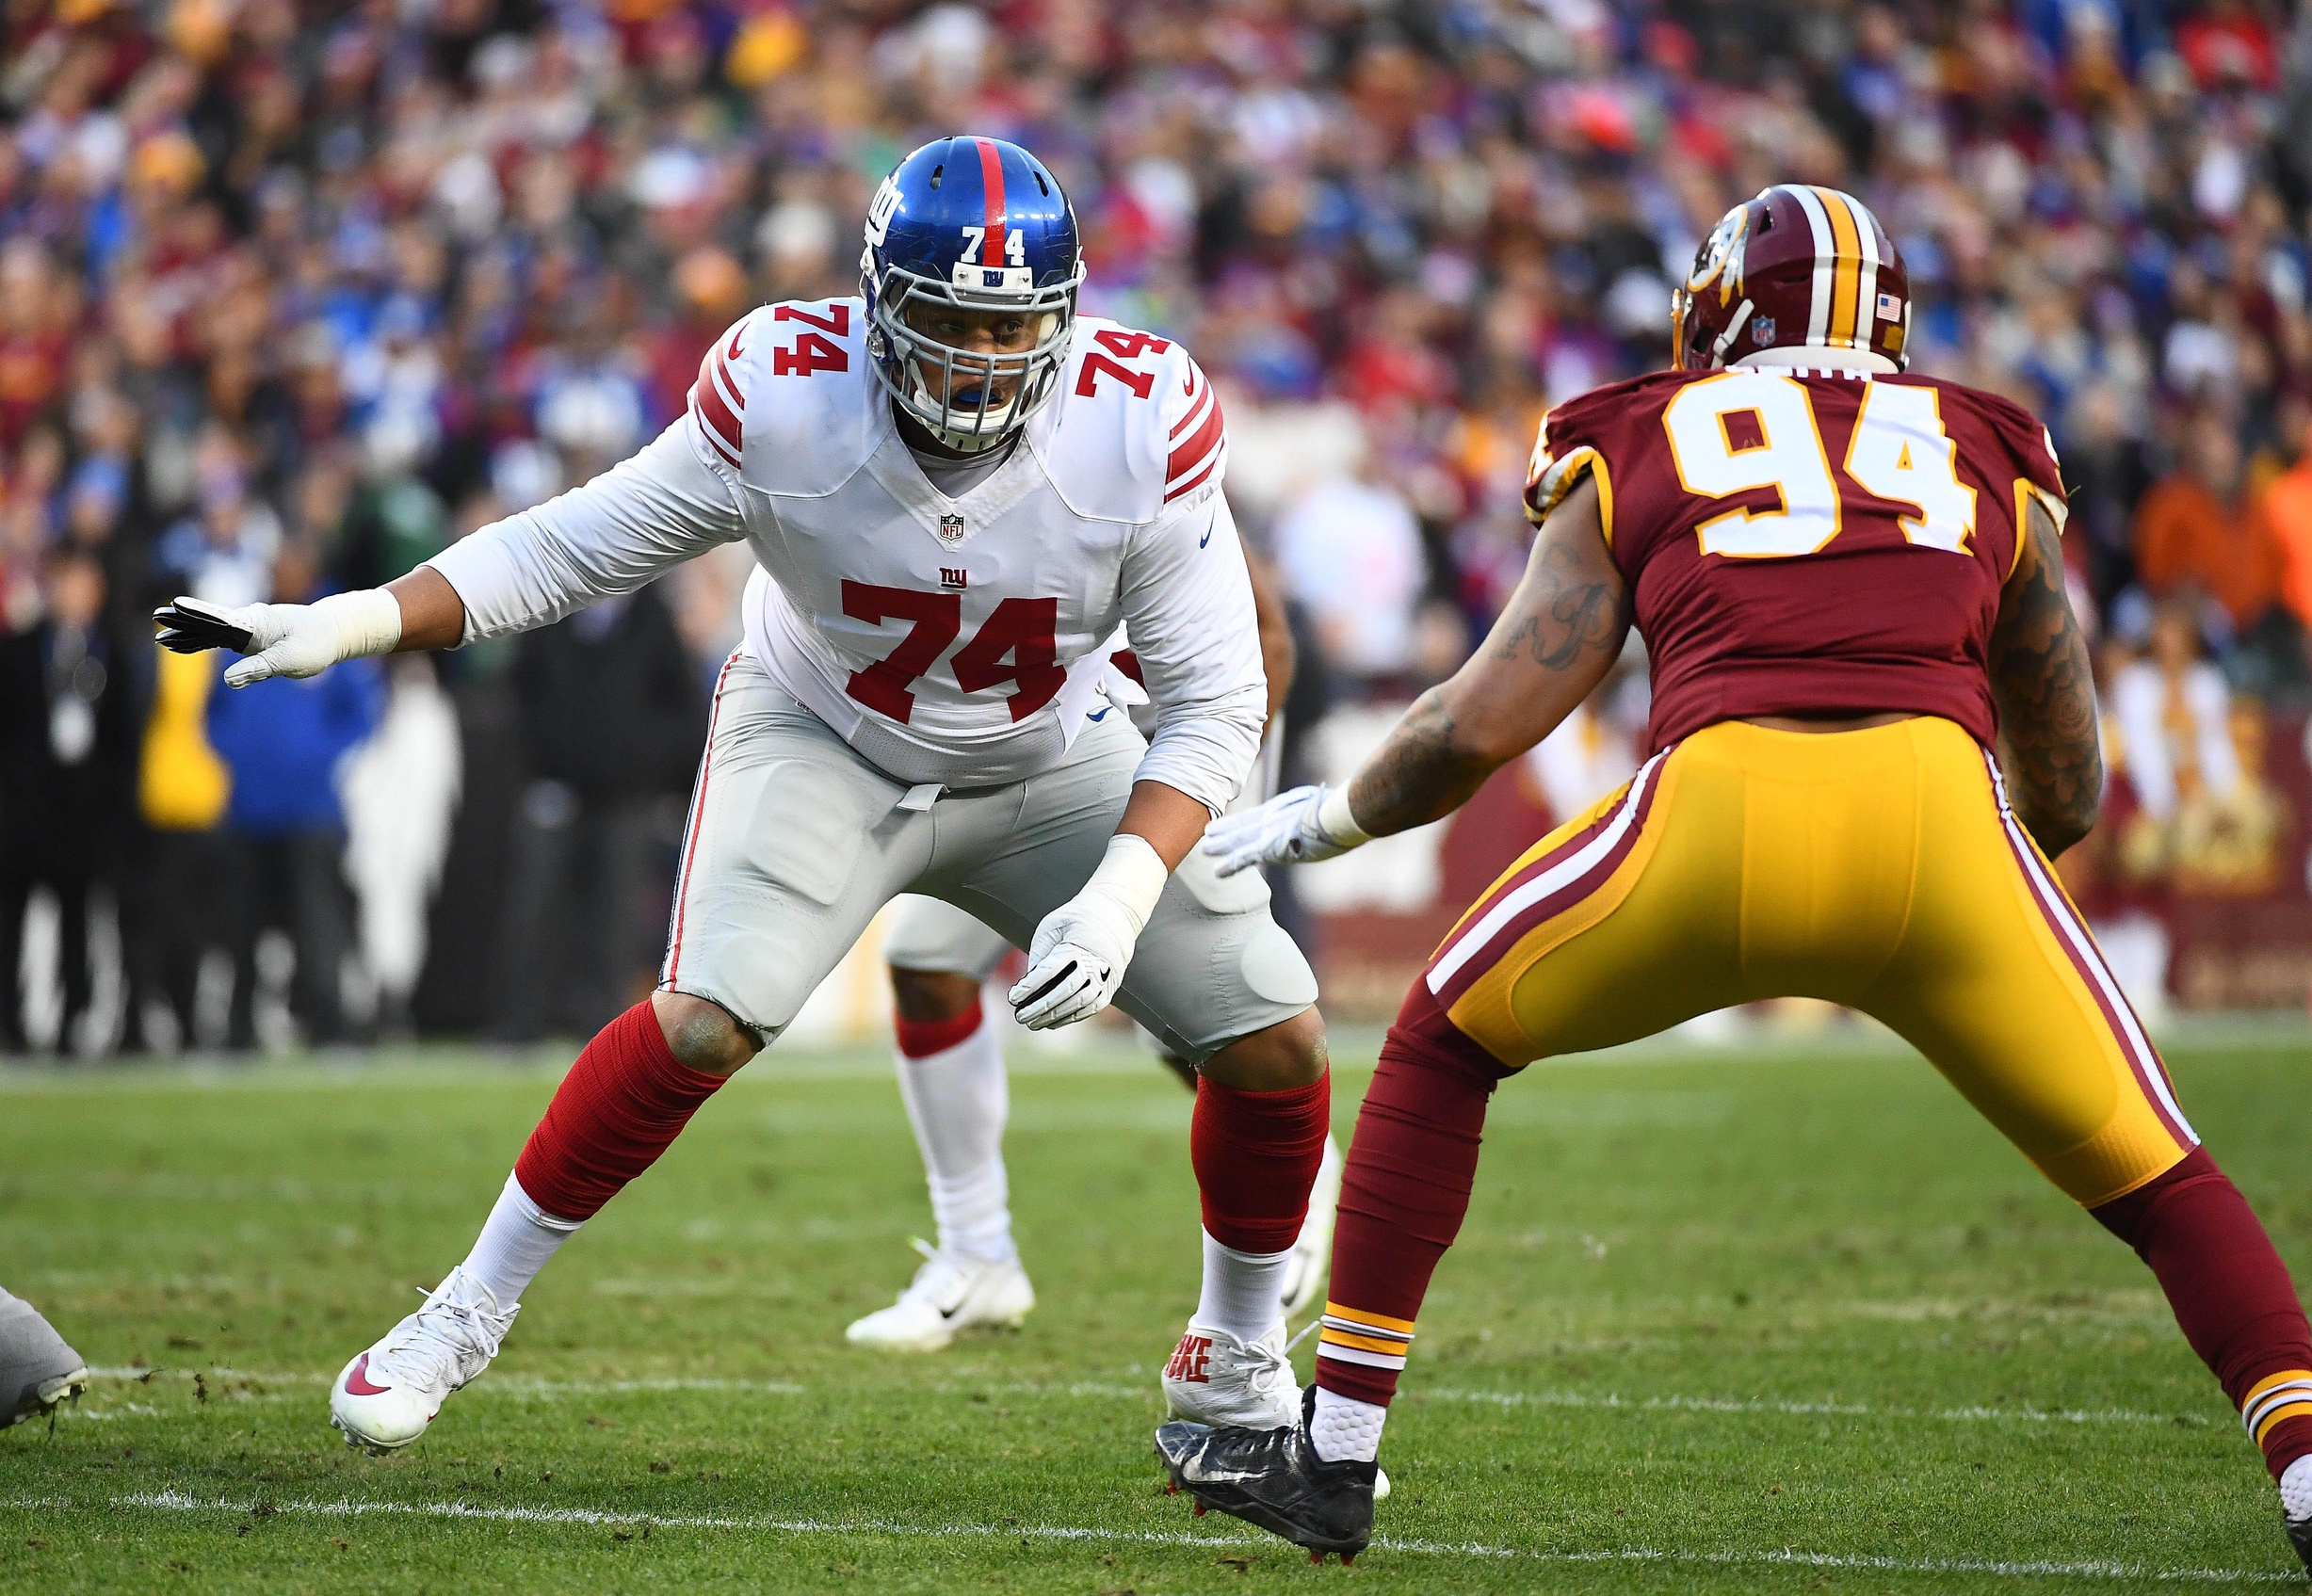 Giants give up on 2015 1st-round pick Ereck Flowers